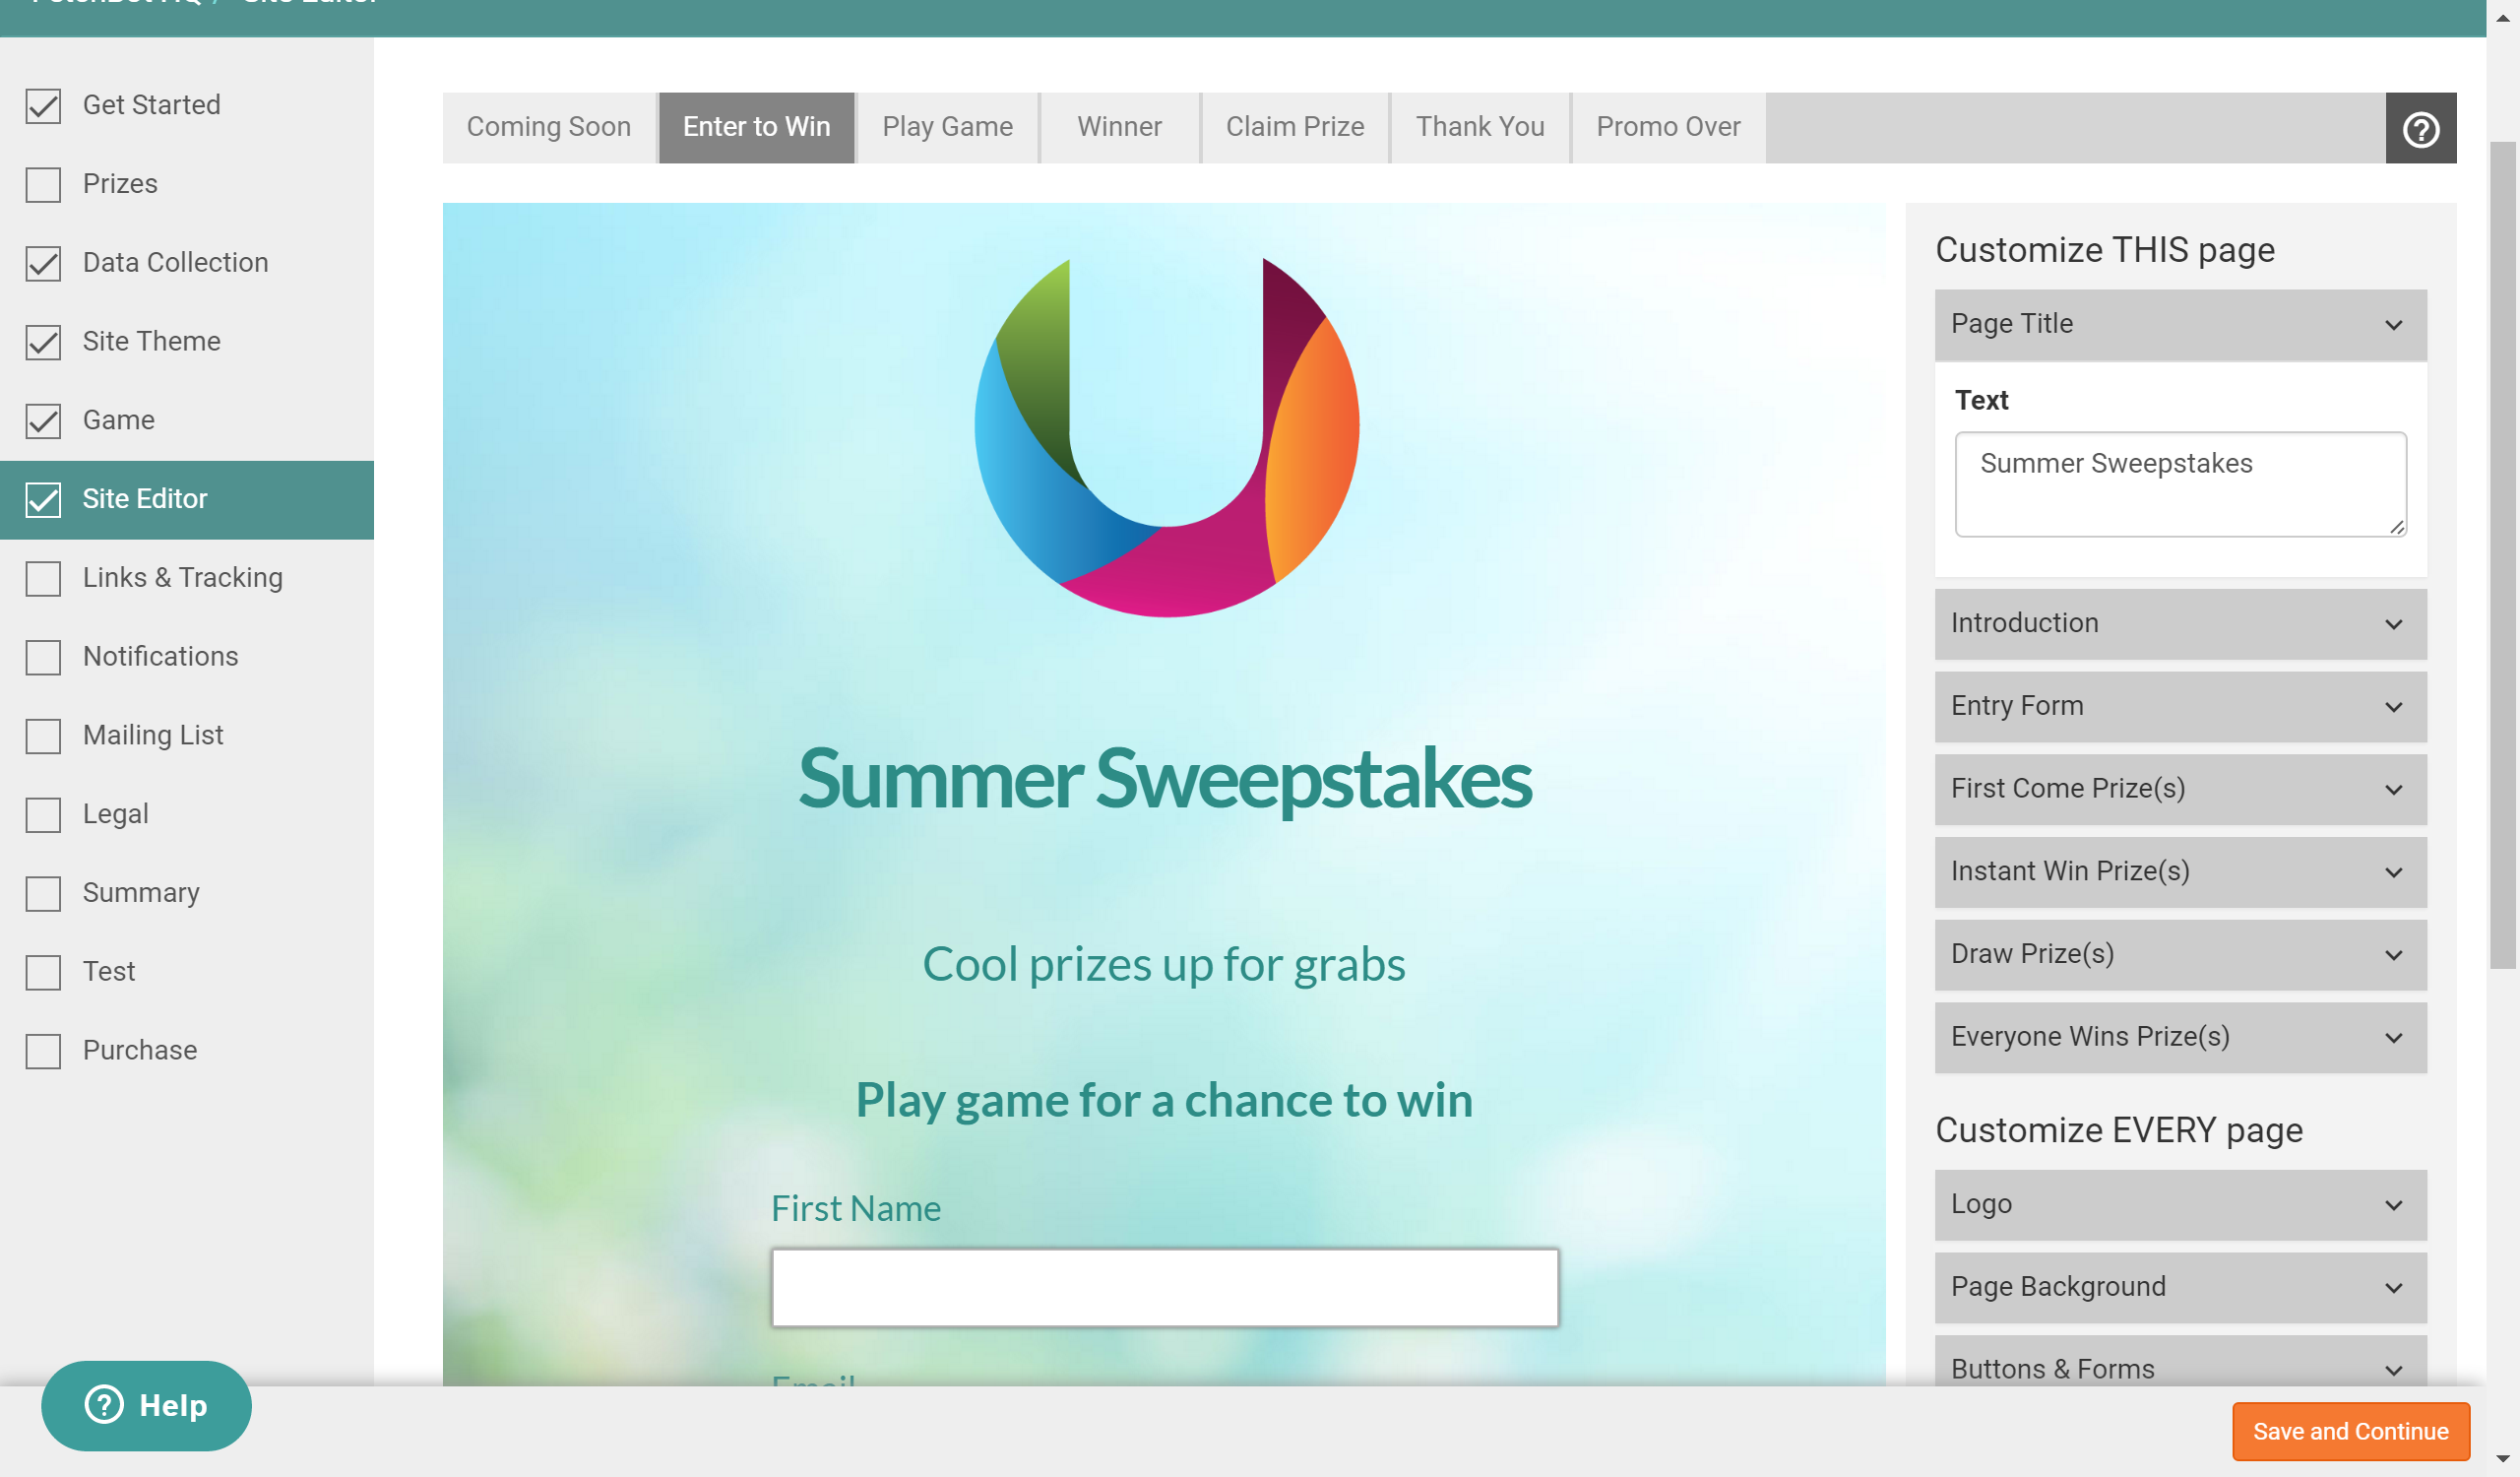 Fetchbot - summer sweepstakes